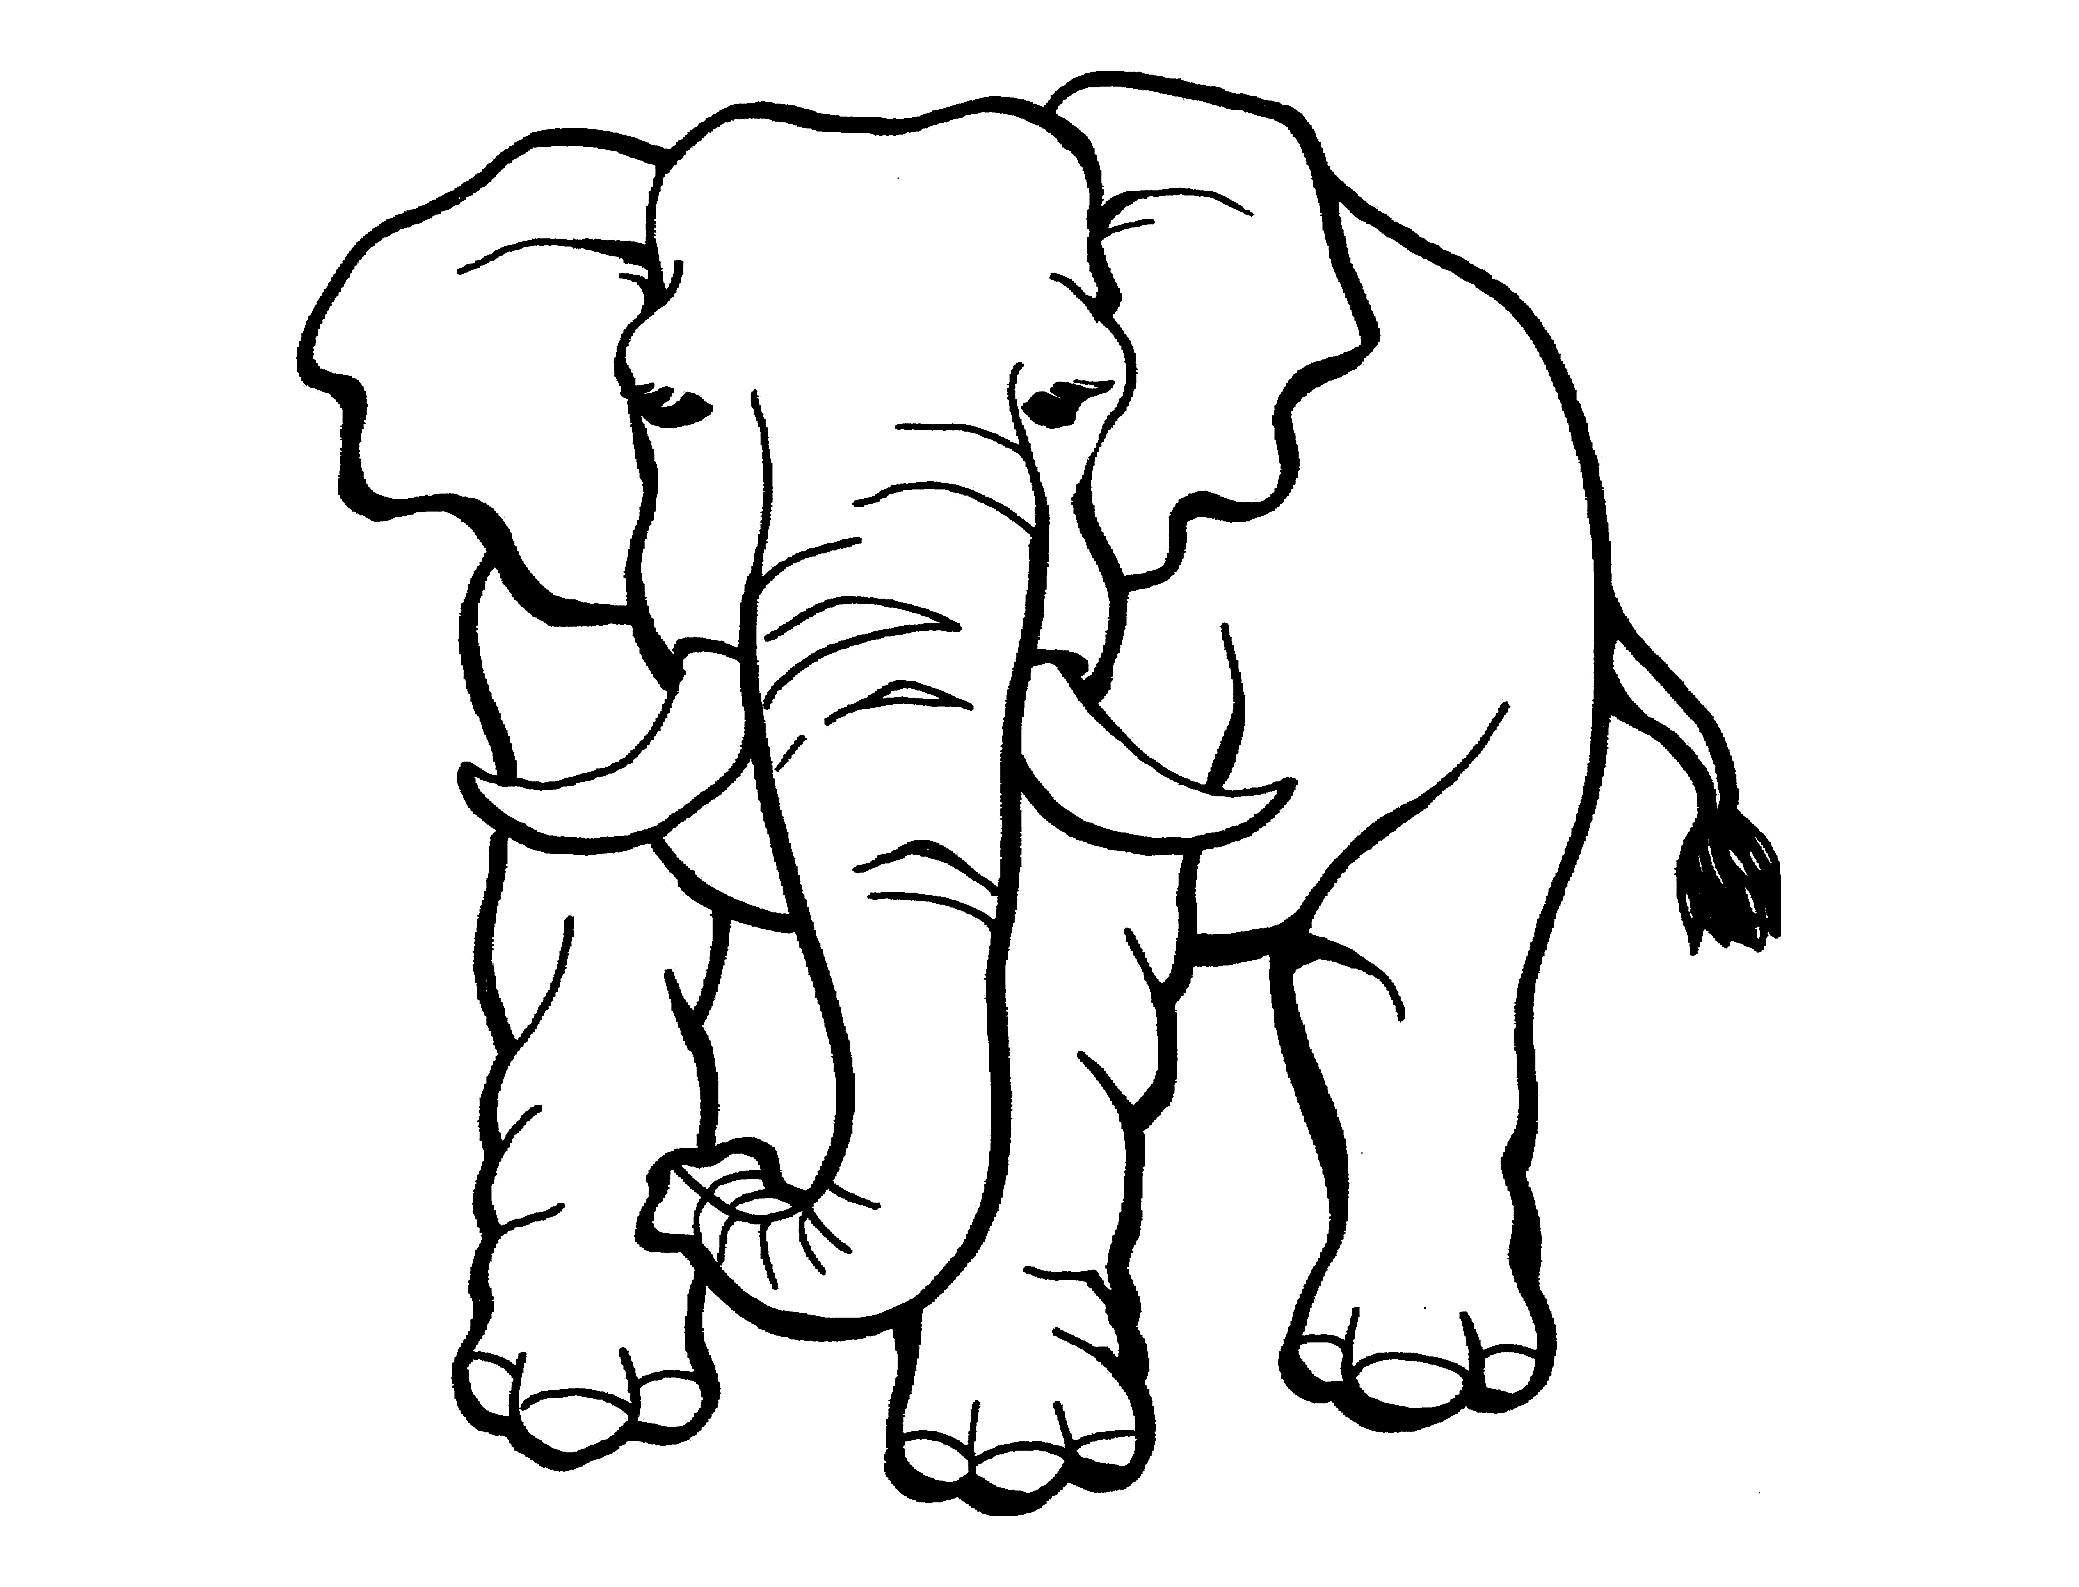 - Elephants To Print For Free - Elephants Kids Coloring Pages